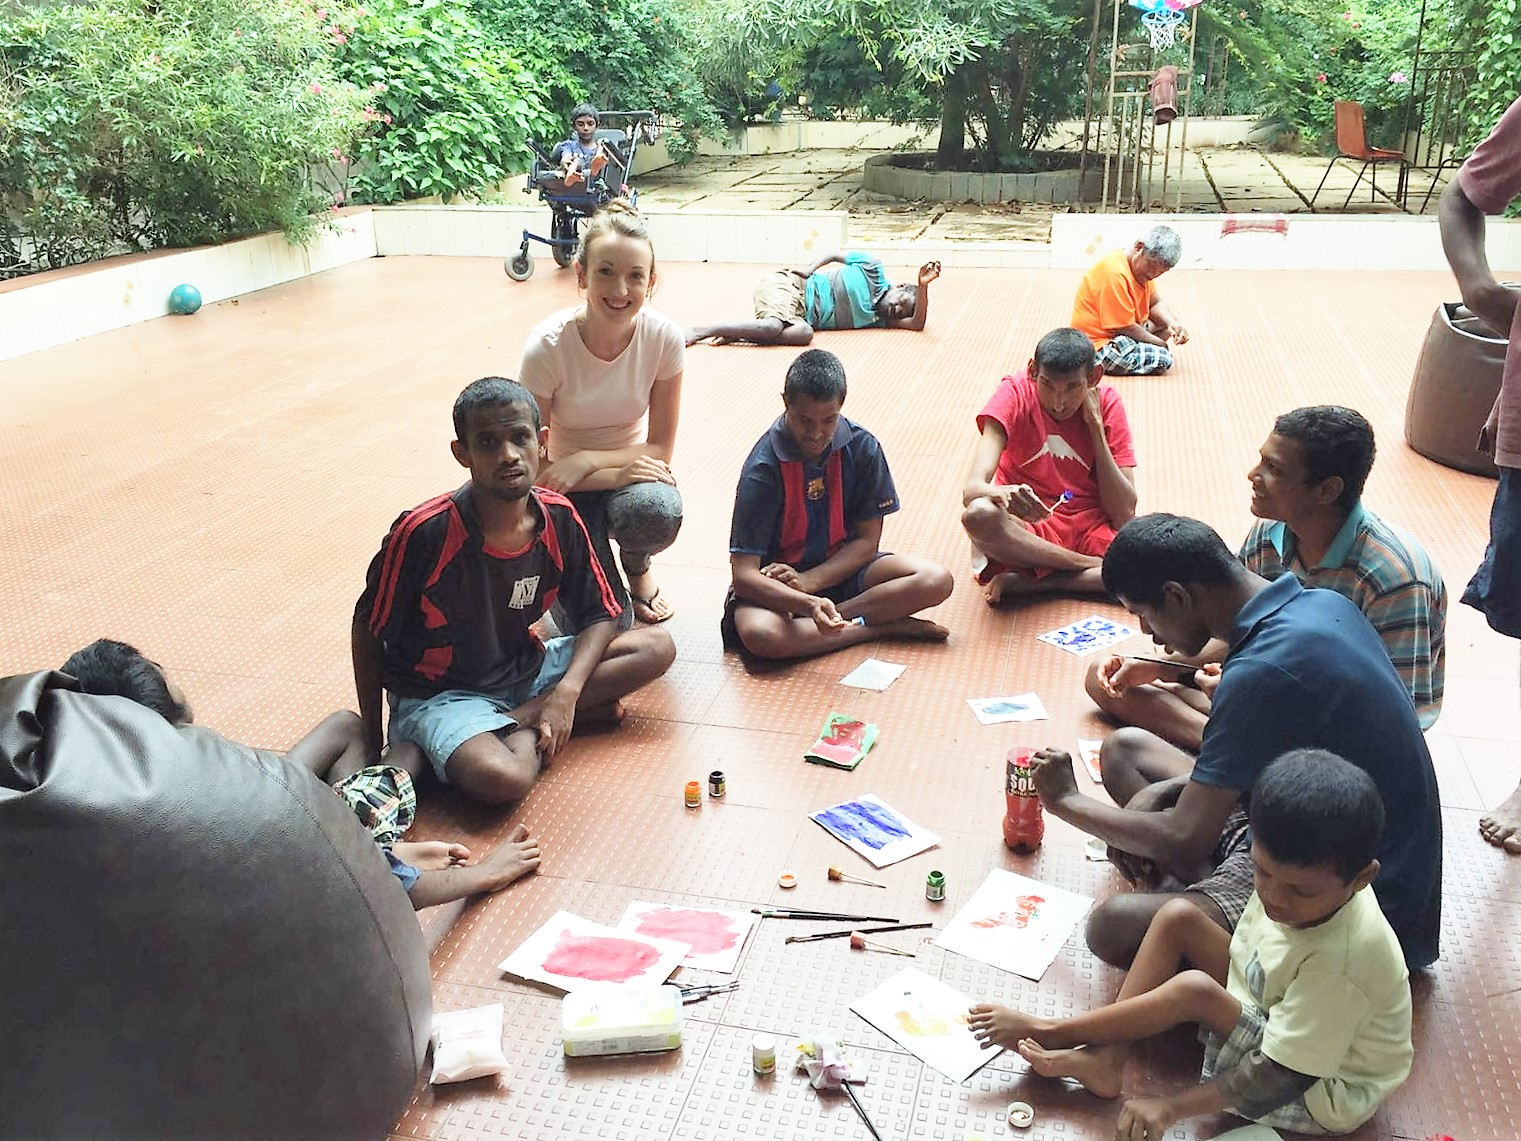 WIT student Dervla Deacon volunteered with development and volunteering organisation SERVE for one month of the summer holidays in Bangalore, India